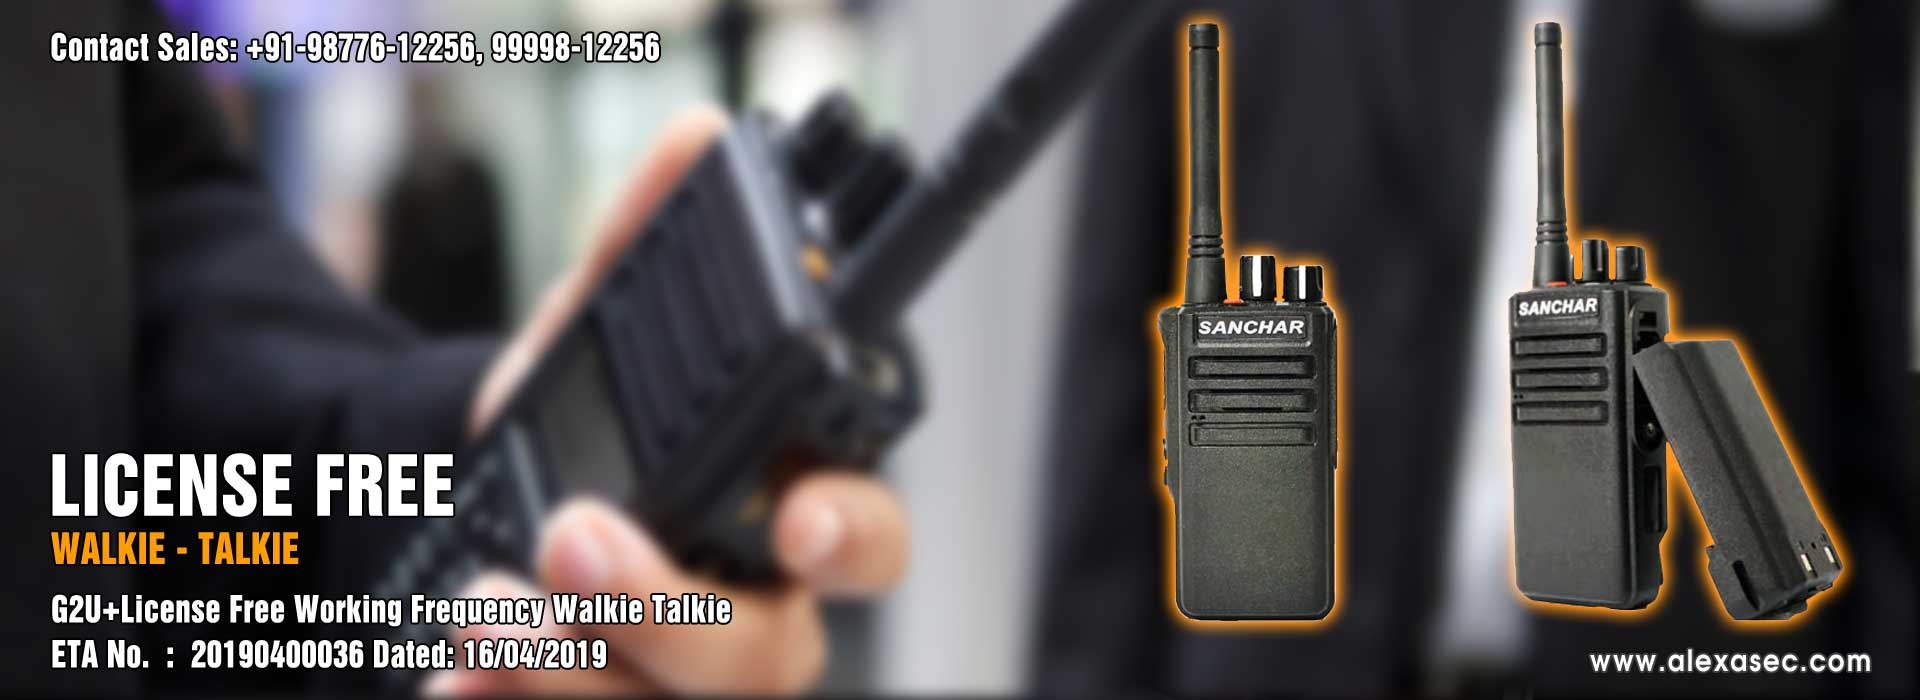 License Free Walkie Talkie dealers suppliers distributors in delhi India Punjab